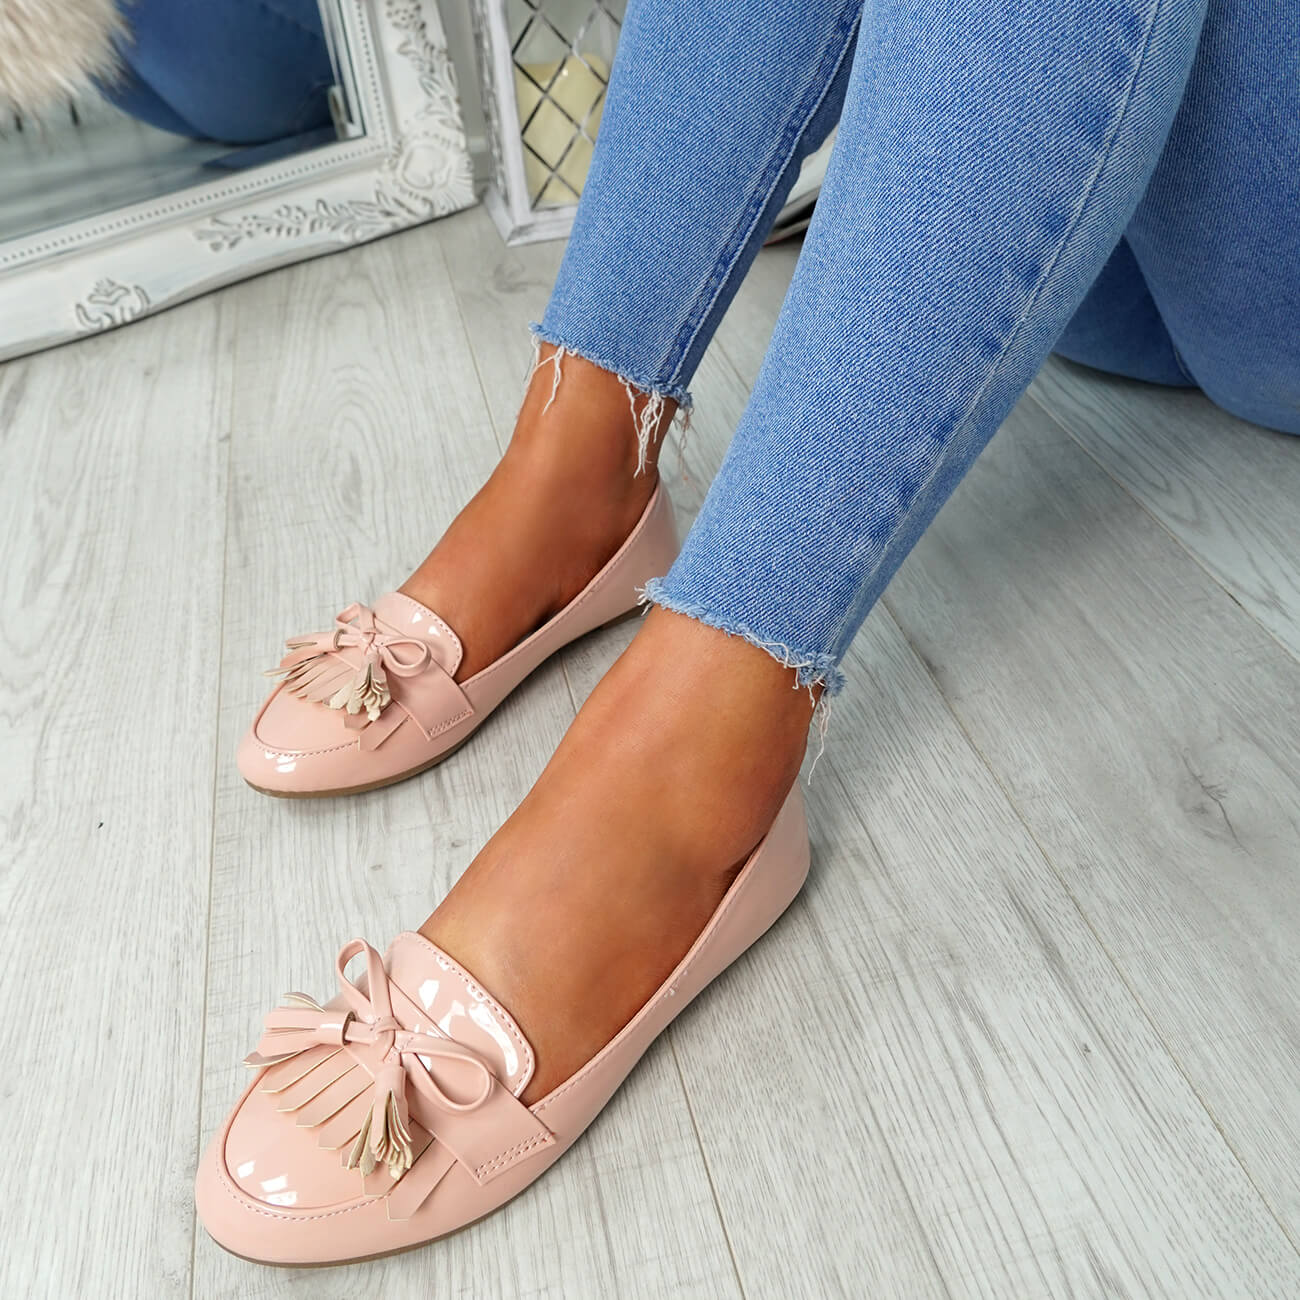 WOMENS-LADIES-FRINGE-BALLERINAS-SLIP-ON-FLAT-DOLLY-PUMPS-CASUAL-SMART-SHOES-SIZE thumbnail 24